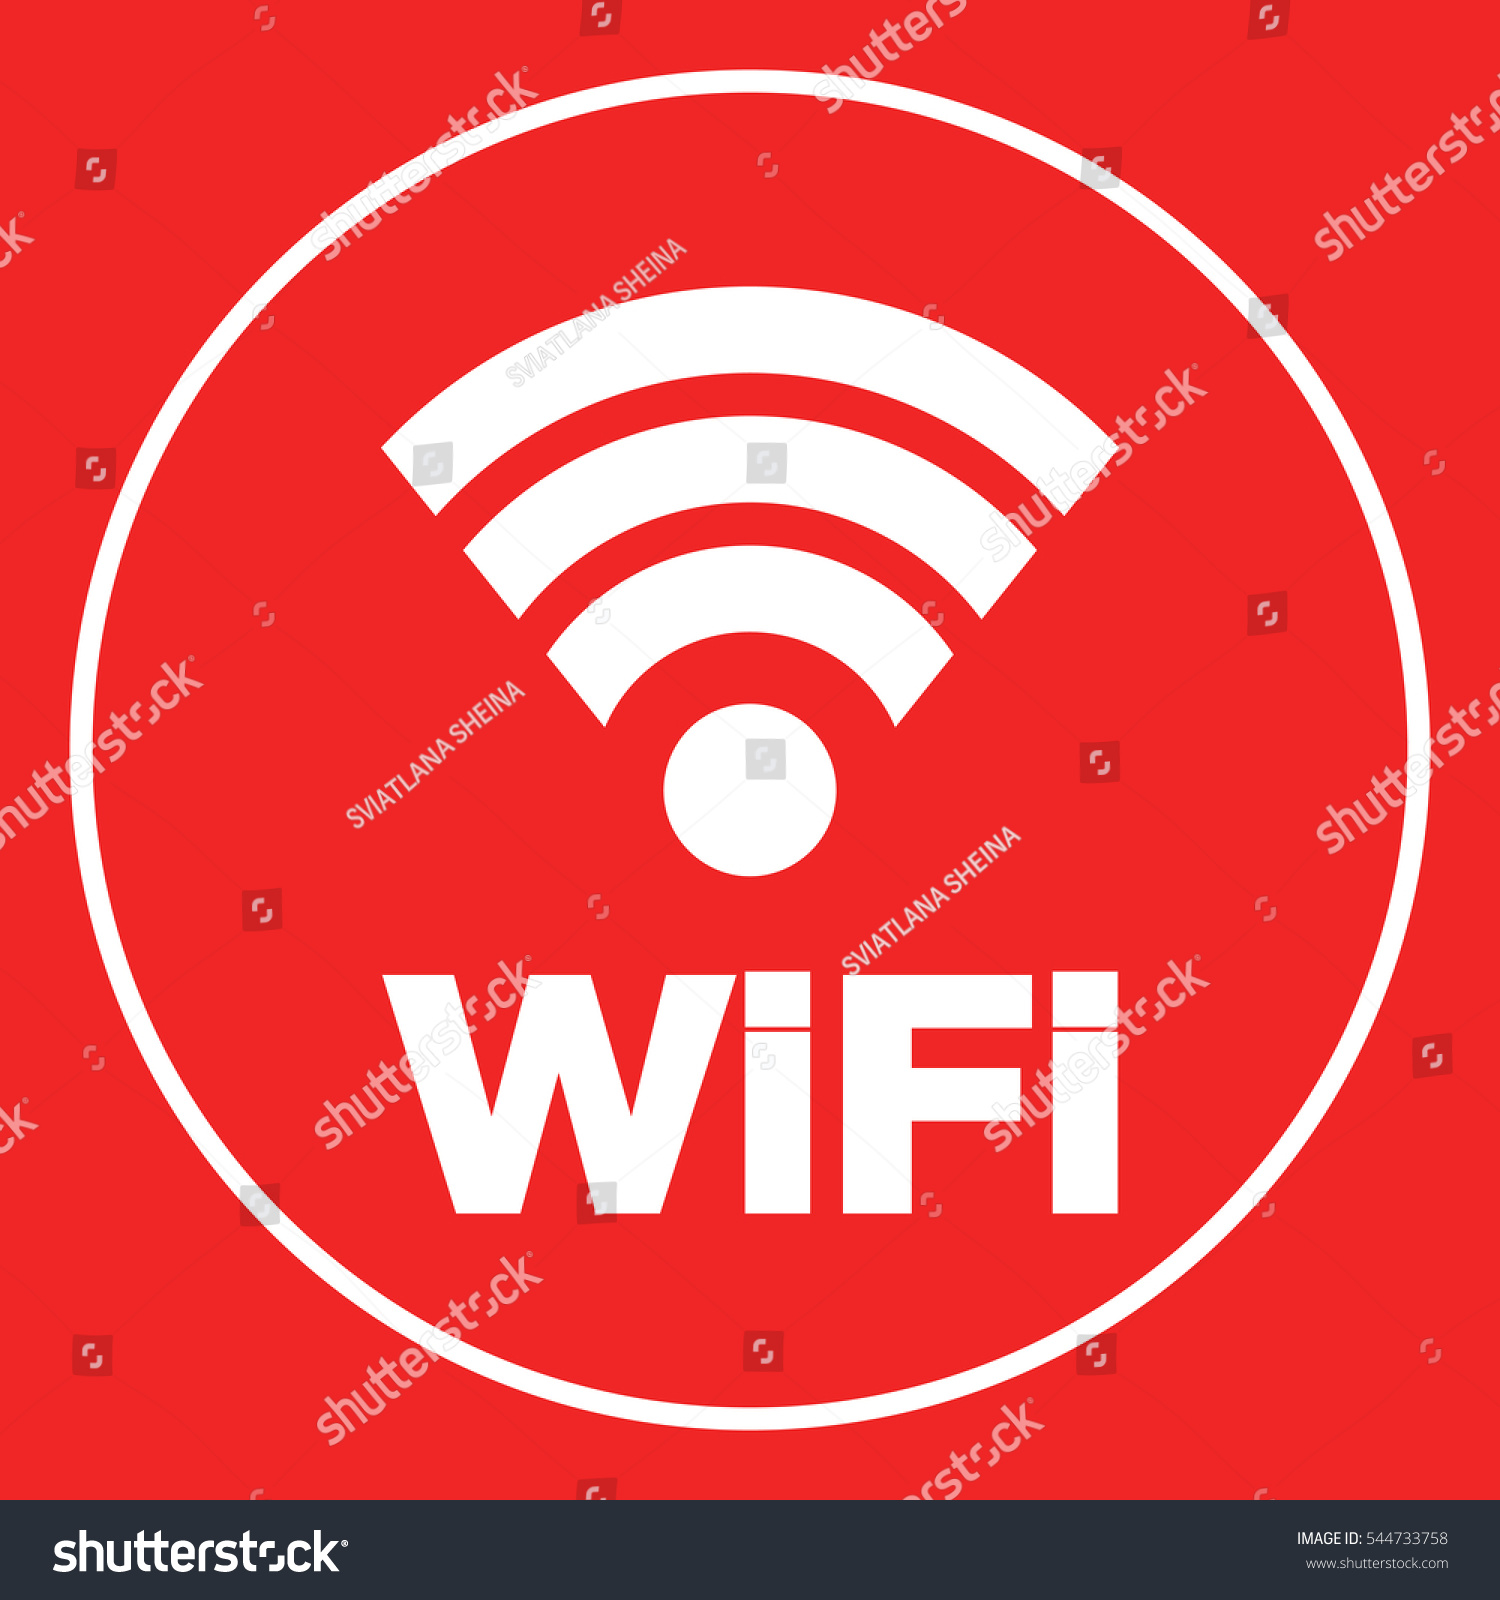 Internet connection symbol icon stock vector 544733758 shutterstock internet connection symbol icon buycottarizona Images